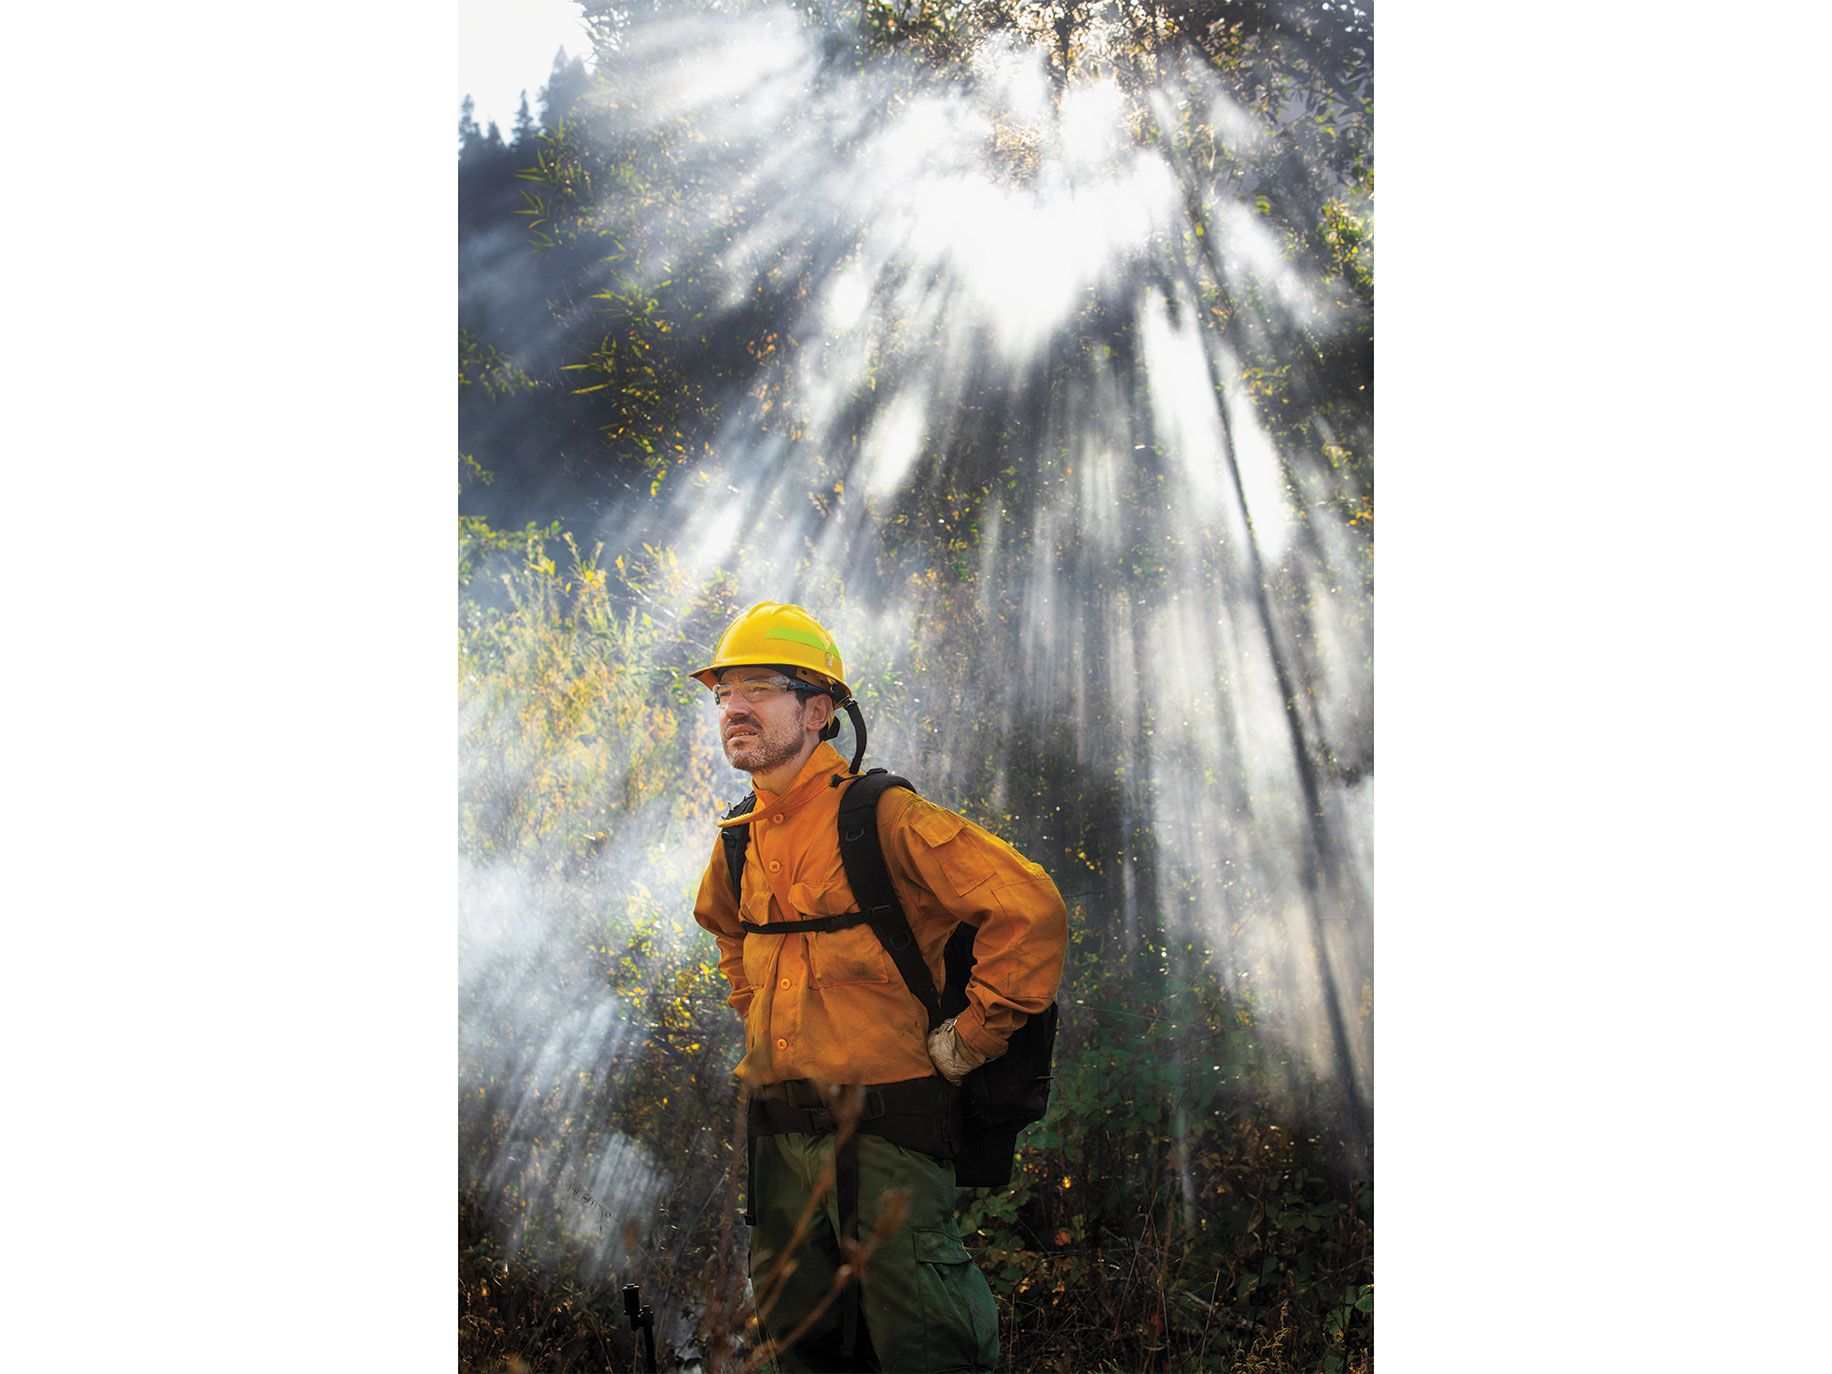 Park ranger Alberto Sarta came from Aragon, Spain, to join a TREX burn and to learn how the forest management techniques of California's indigenous people can help prevent destructive wildfires.